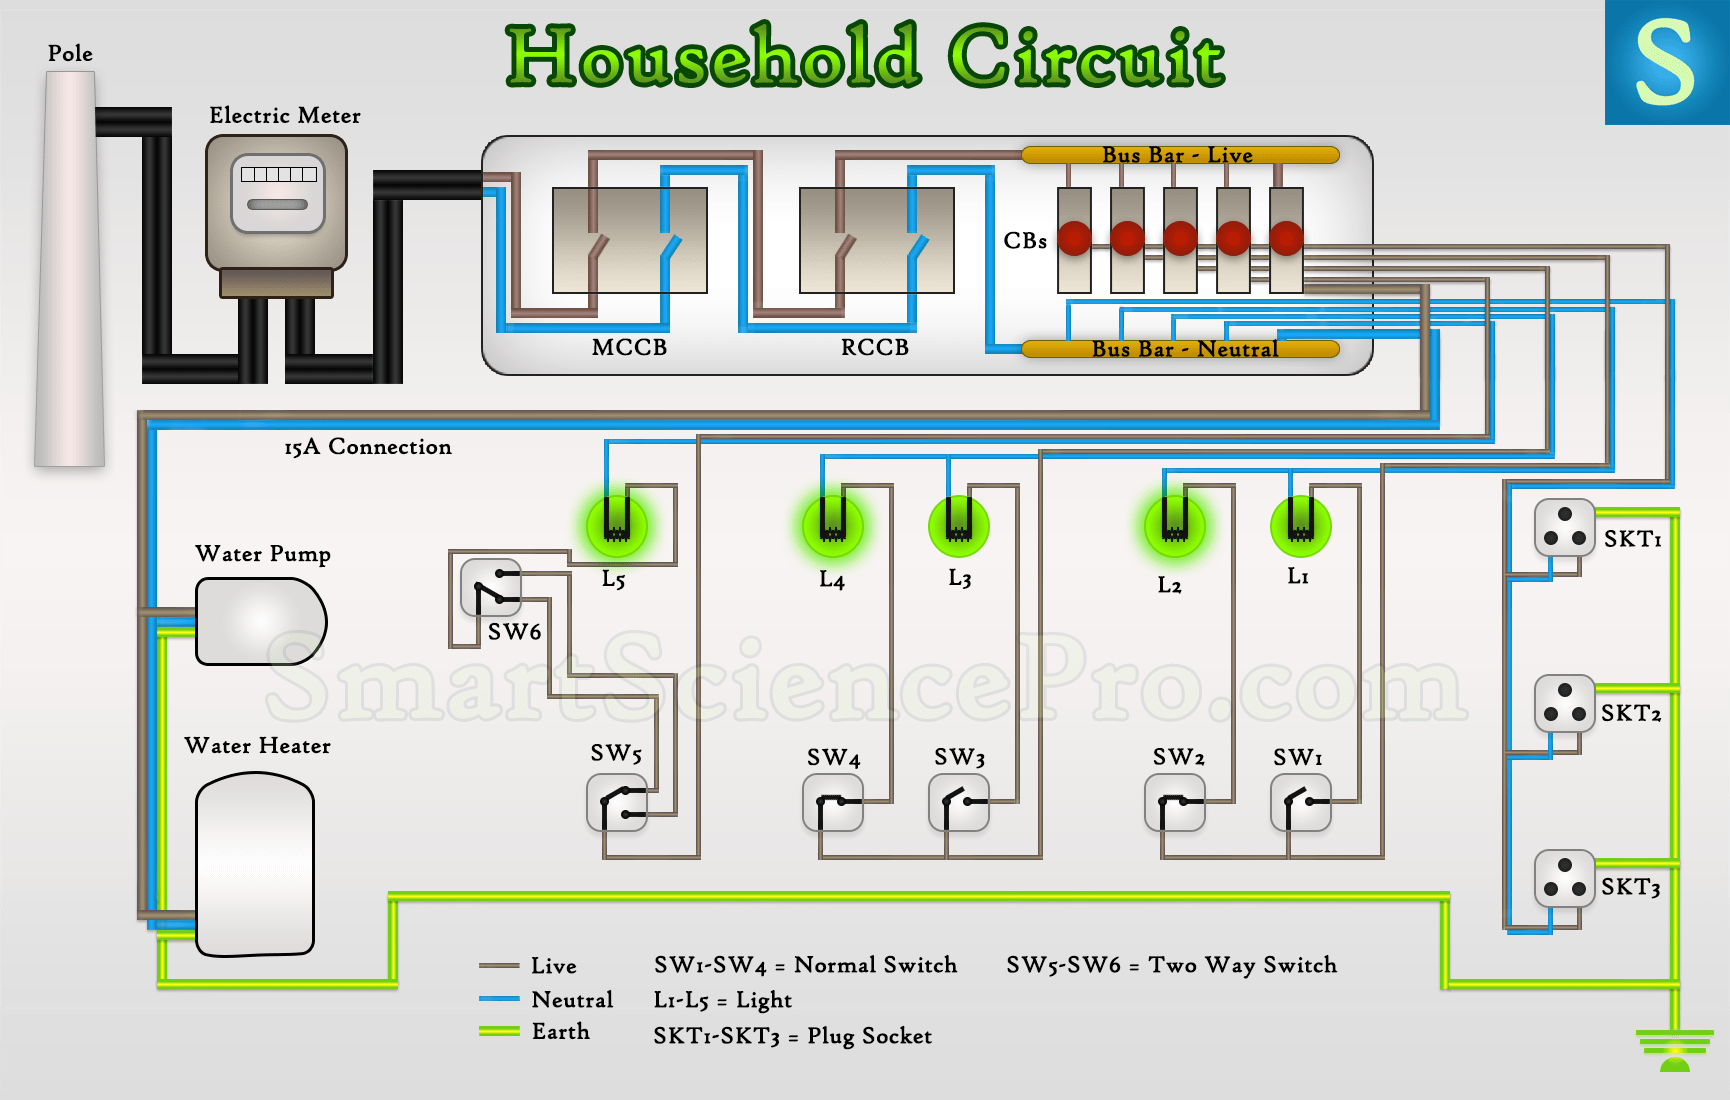 basic electrical parts \u0026 components of house wiring circuits \u2022 ssphow basic electrical parts form the household circuit